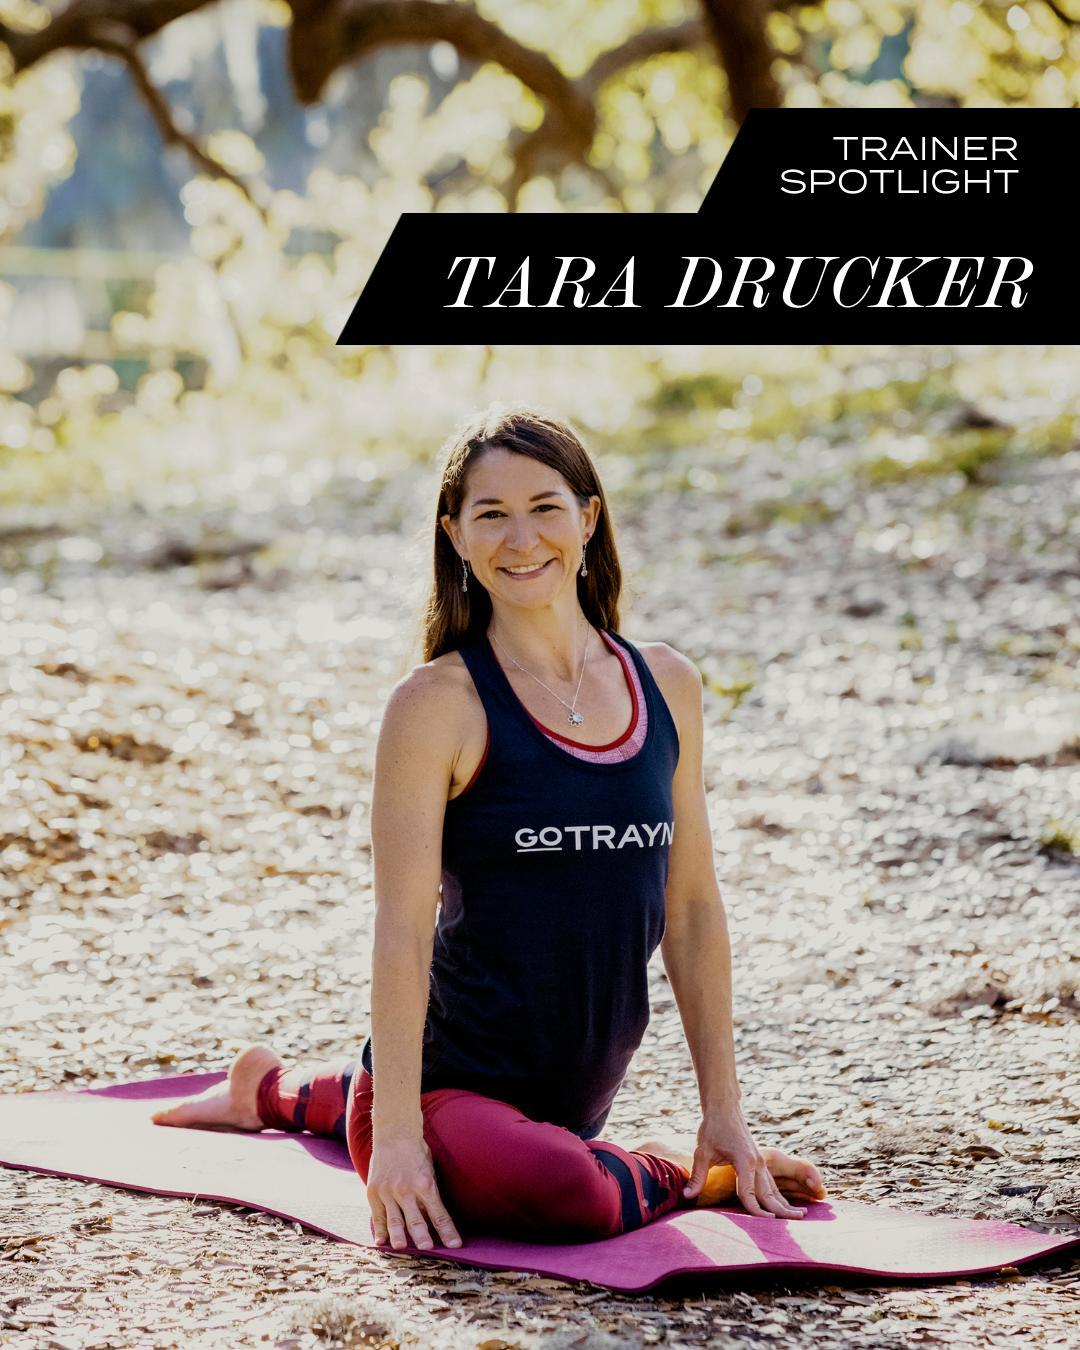 ✨GET TO KNOW TARA✨  Tara began practicing yoga to deepen her meditation practice. 🧘🏻♀️ She quickly found that yoga gave her the mind, body, and spirit connection she had been longing for her entire life. 💡  Through yoga, she was able to heal the grief associated with losing both parents, and balance her physical, mental, emotional, and energetic body. 🧠  Following her intuition, Tara completed her 200 hour Teacher Training at the Lotus Pond in Tampa, where she is currently working on her advanced training to become a 500 hour teacher. 🤯  Tara is passionate about helping students feel ease and confidence in yoga postures so they can find balance and bliss in their lives. ⚖️  She focuses on alignment while incorporating: ✅ Breathwork ✅Mindfulness,  ✅Joy  Into all of her classes.✨  Experience the magic yourself and book a class or a private session with Tara today -> gotrayne.com/book (@gotrayne) 🔥   #onlinetrainer #onlinepersonaltraining #onlinetrainingcoach #onlinept #strengthtraining #virtualpersonaltraining #indoorcycling #strenghtrainingforwomen #livetraining #zoomtraining #liveworkout #zoomworkouts #onlinefitnesscoaching #athomeworkout #onlinetrainingprogram #DitchTheCommute #GoTrayne #GoTrayneTrainer #GoTrayneWorkout